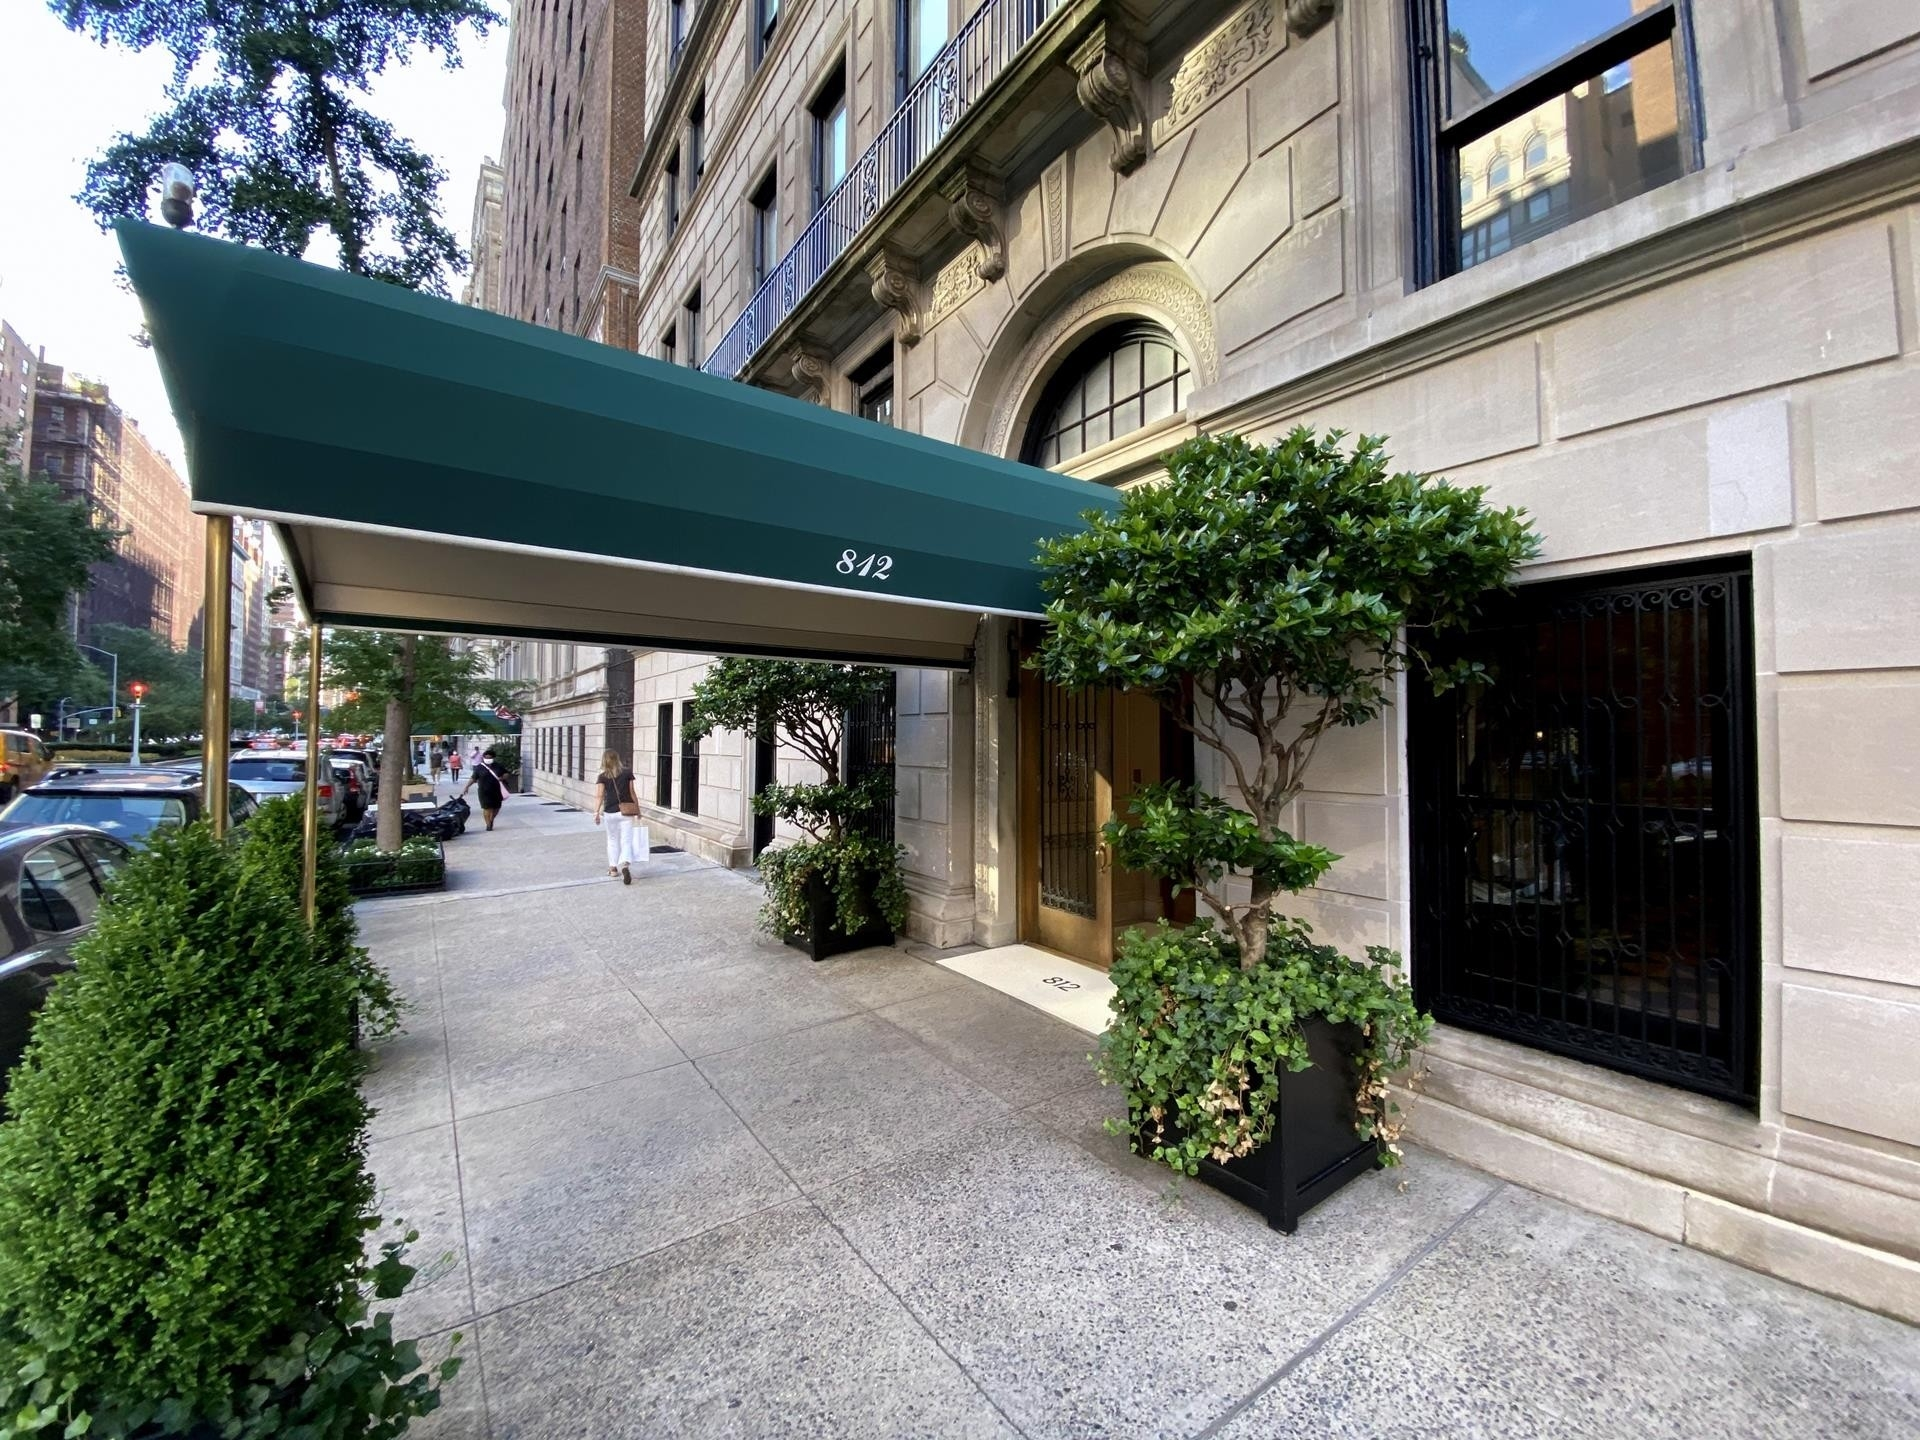 16. Co-op Properties for Sale at 812 Park Avenue, 8/9E Lenox Hill, New York, NY 10021